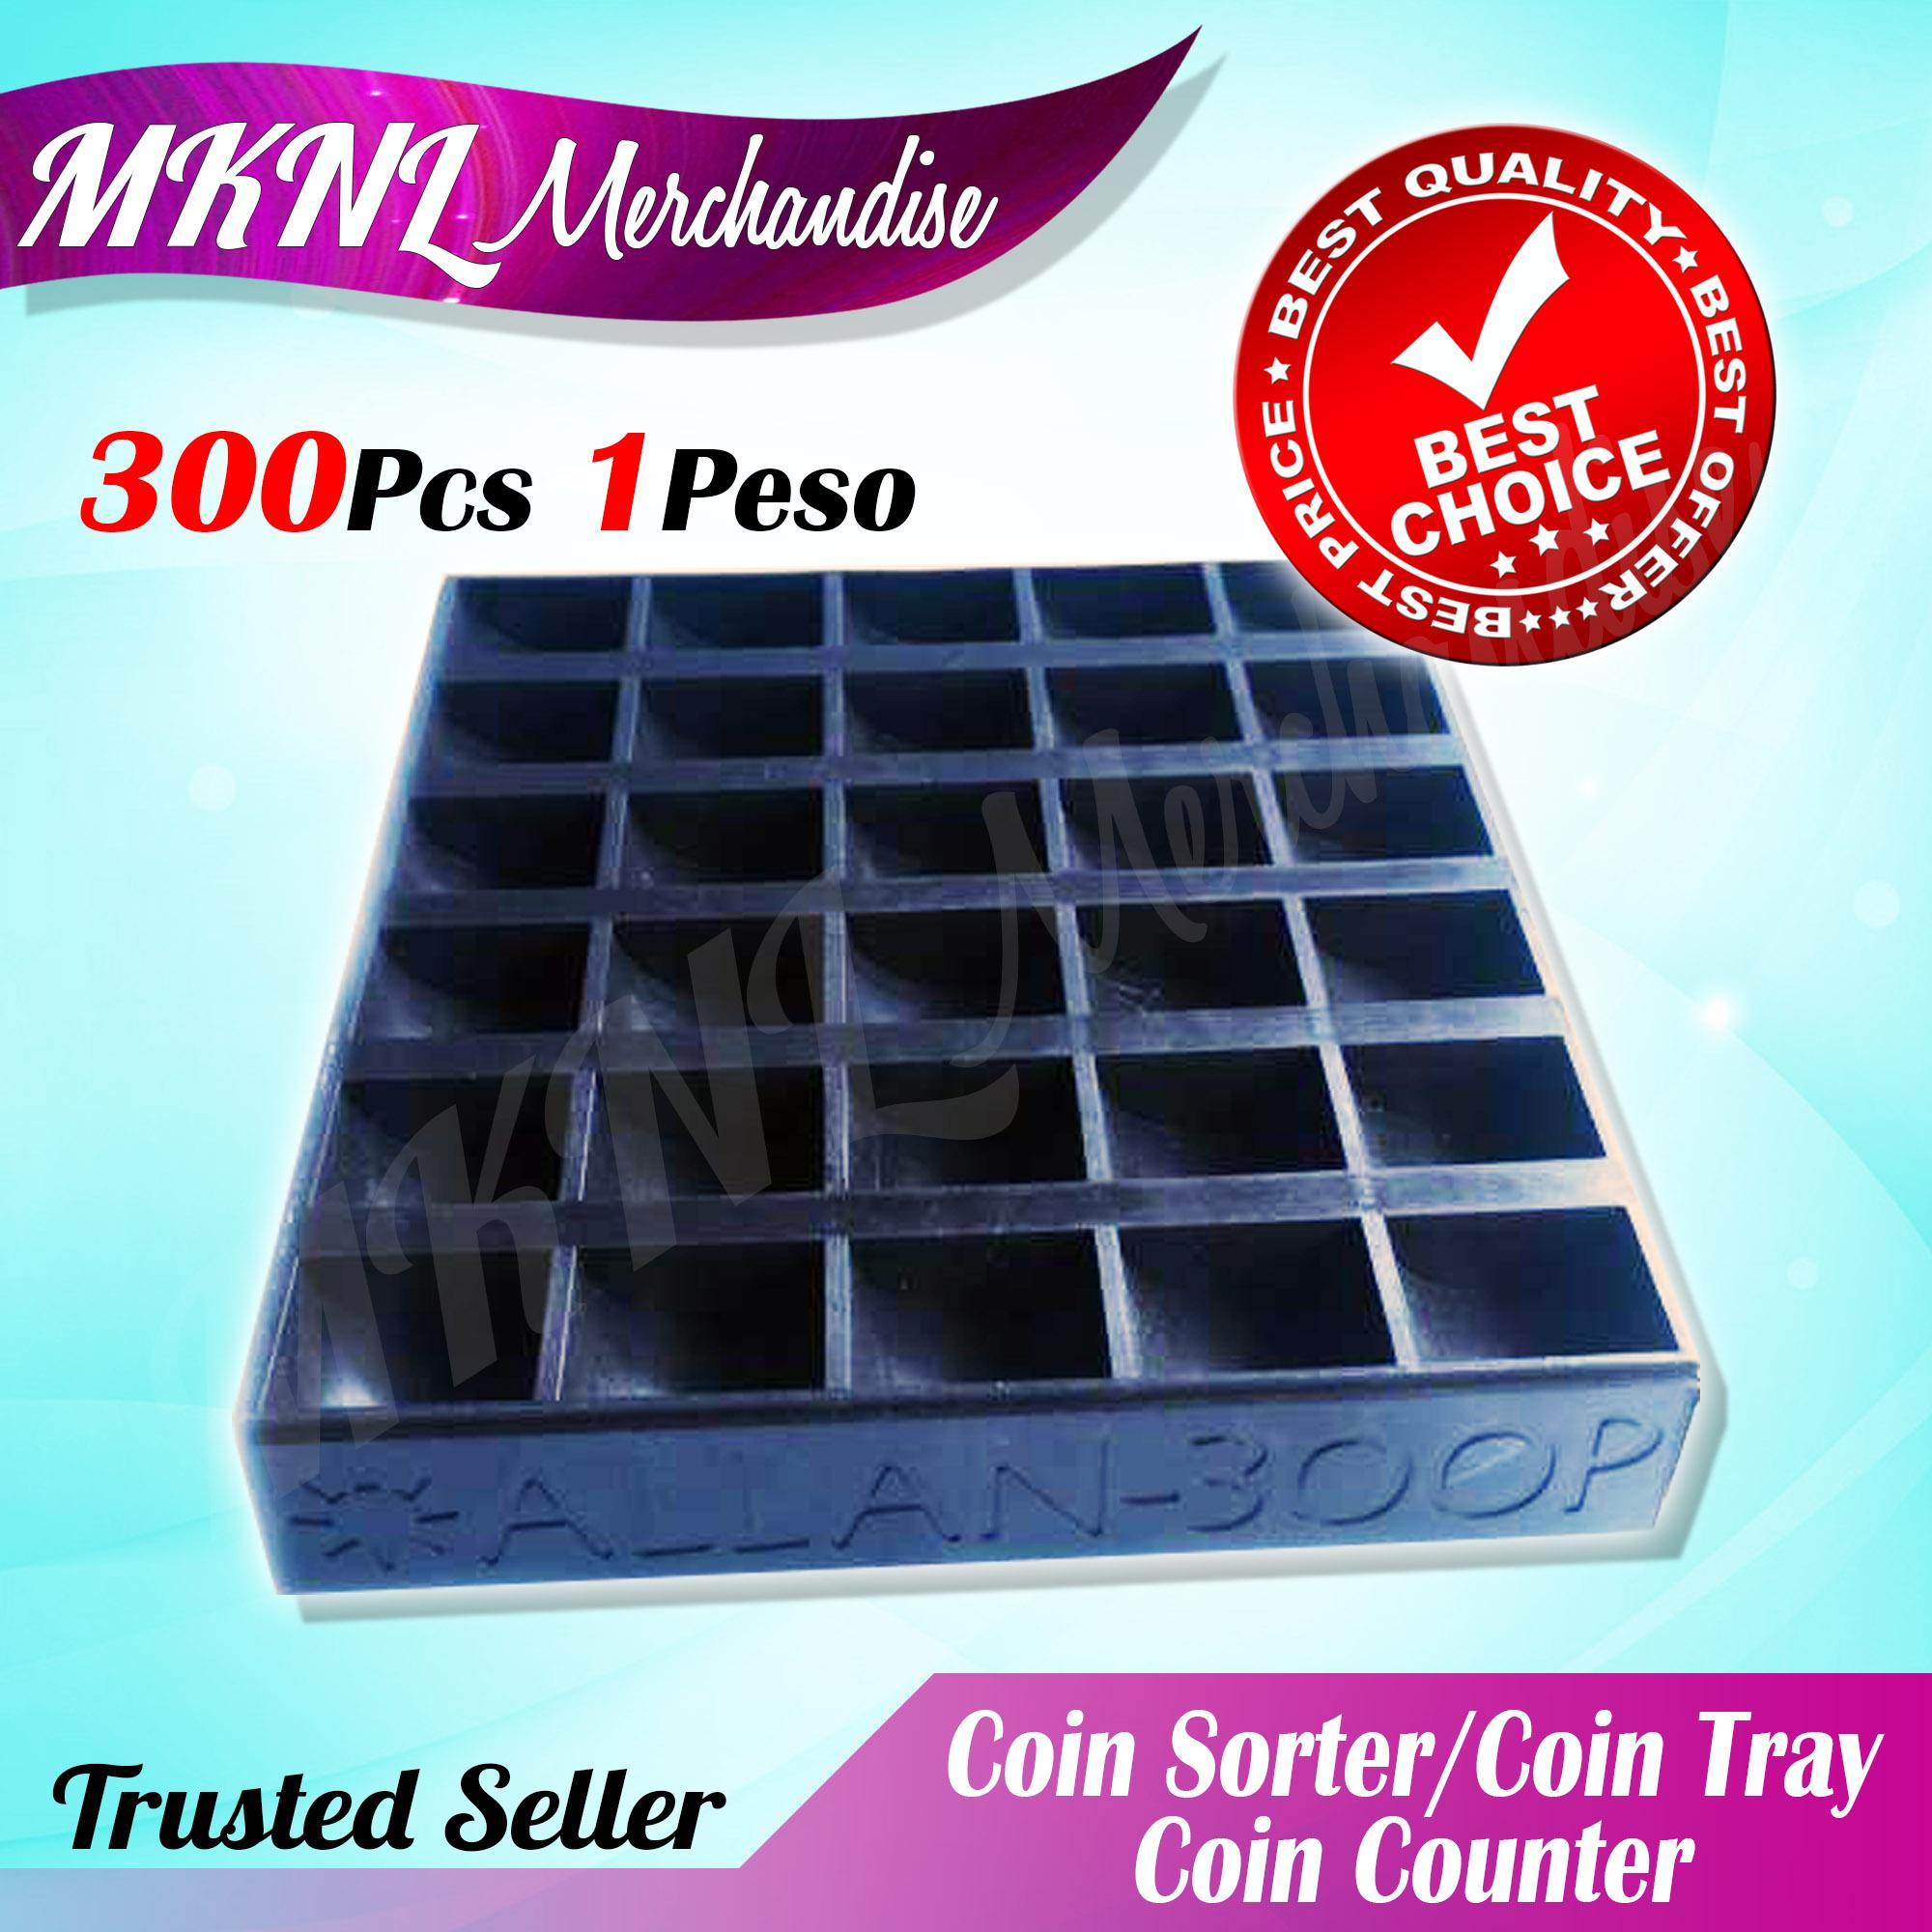 Coin sorter/coin tray/coin counter